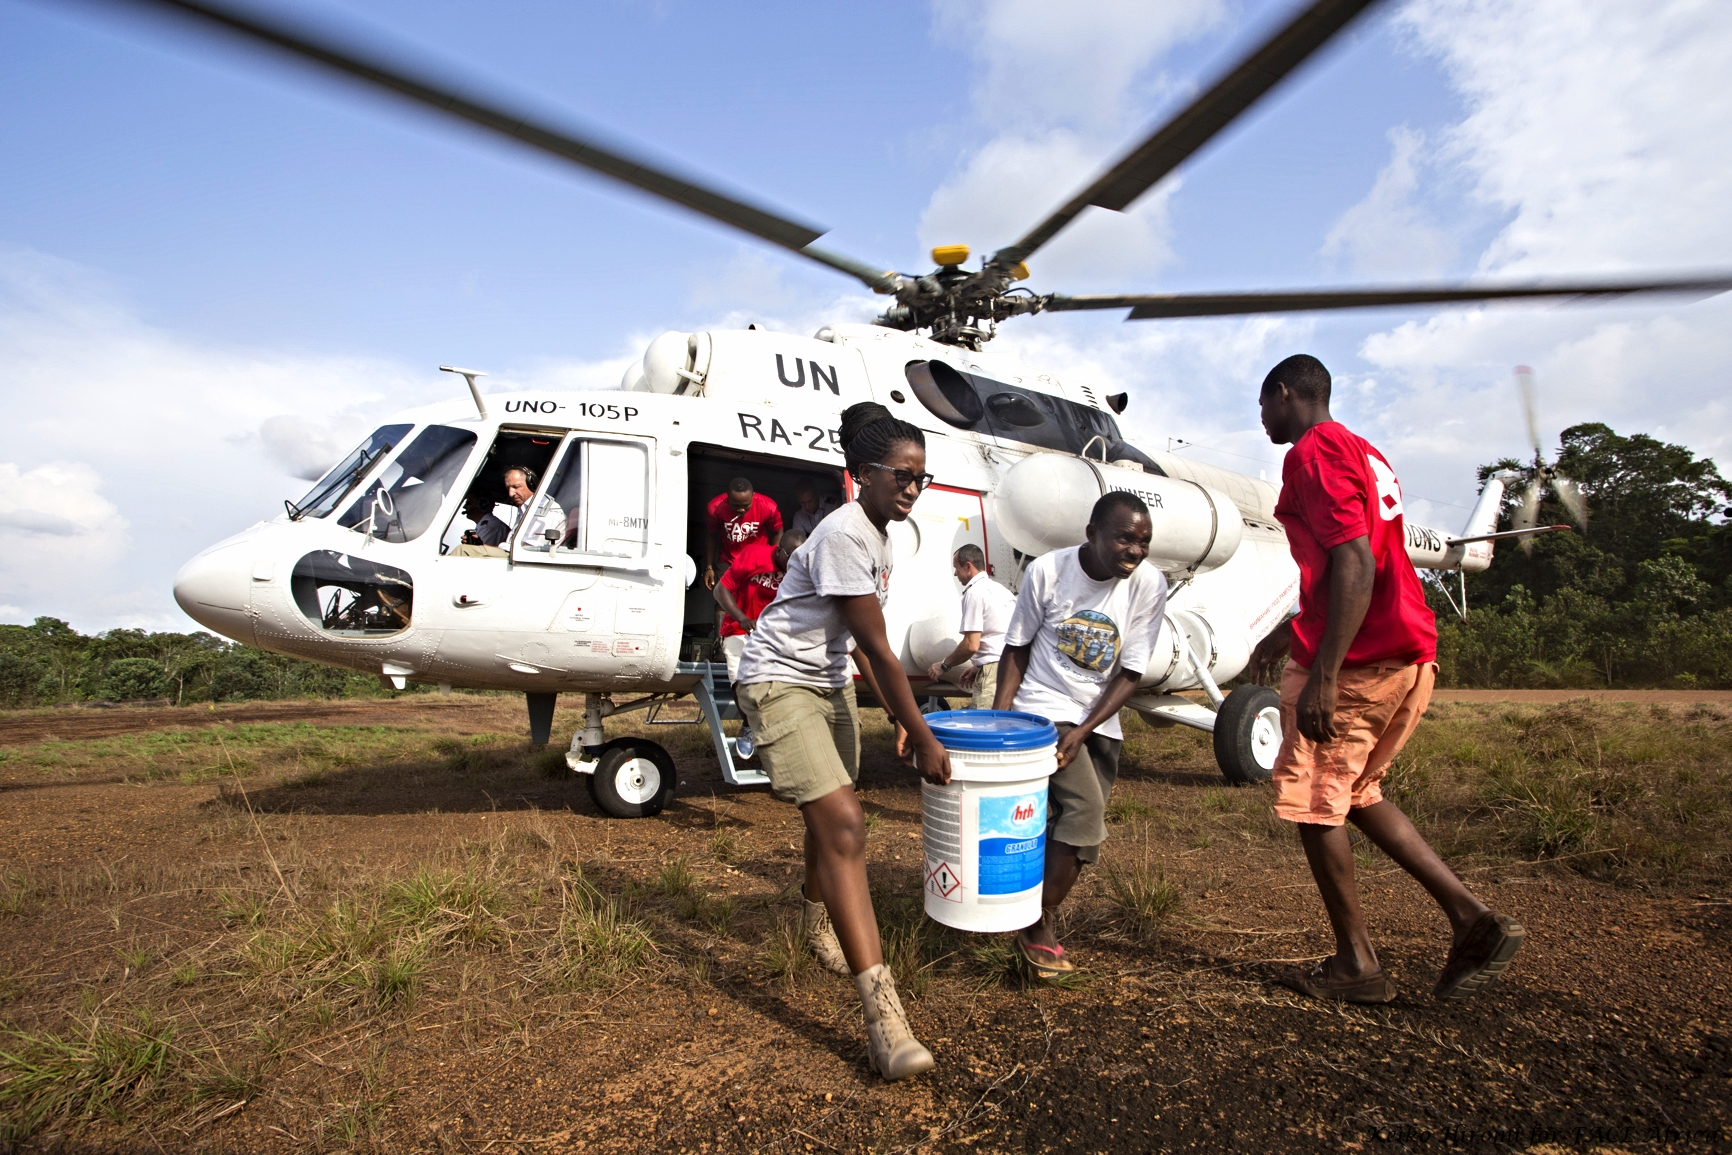 UN air drop of hygiene kits for distribution to schools   [photo: Keiko Hiromi for FACE Africa]